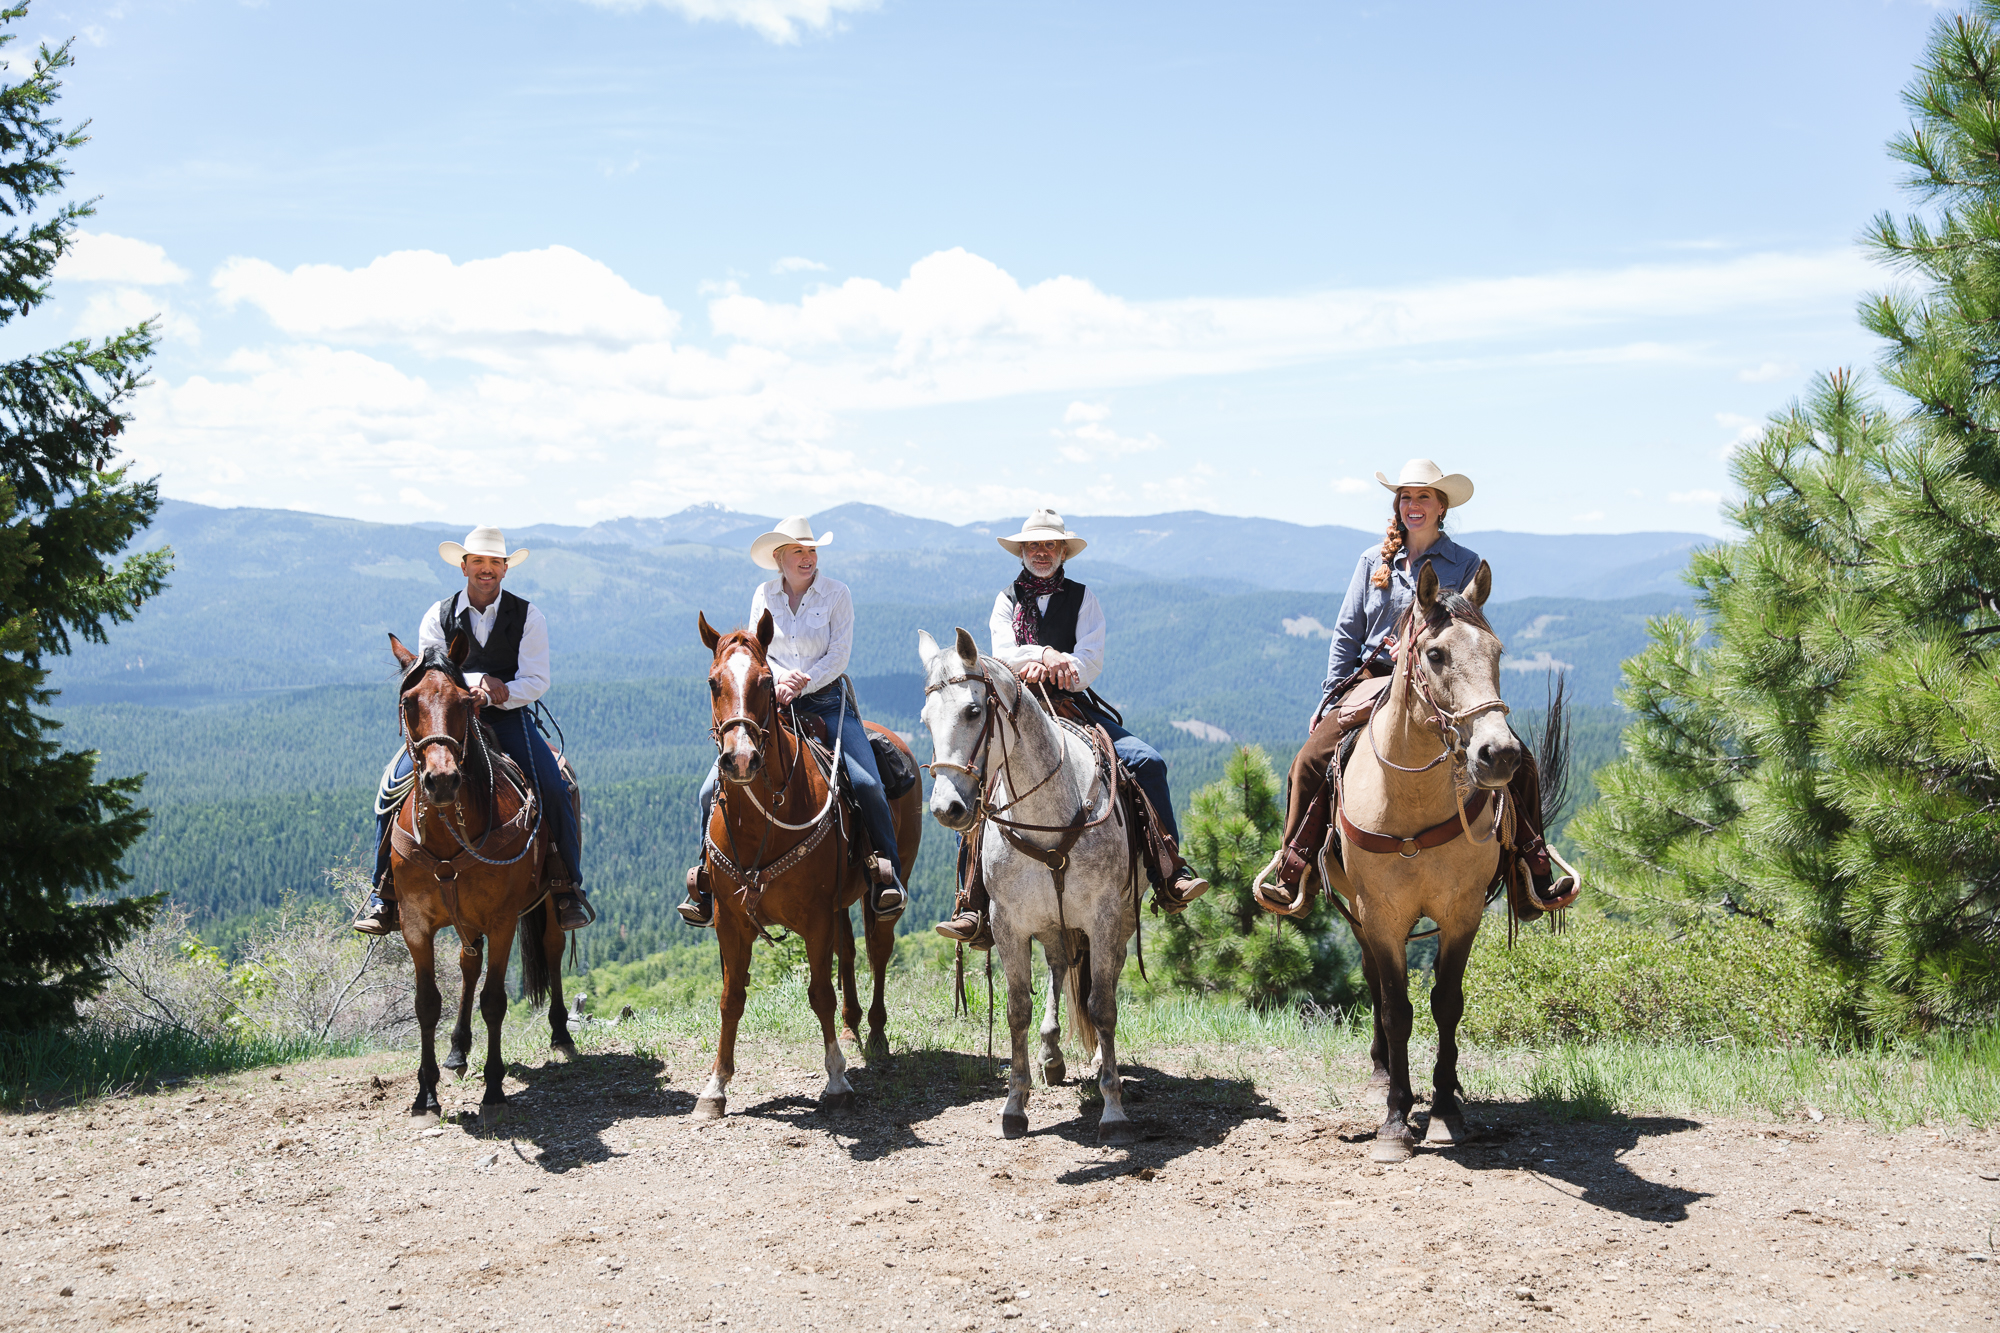 Enjoy the culture of the old west at Greenhorn Ranch in California along with wonderful Western hospitality